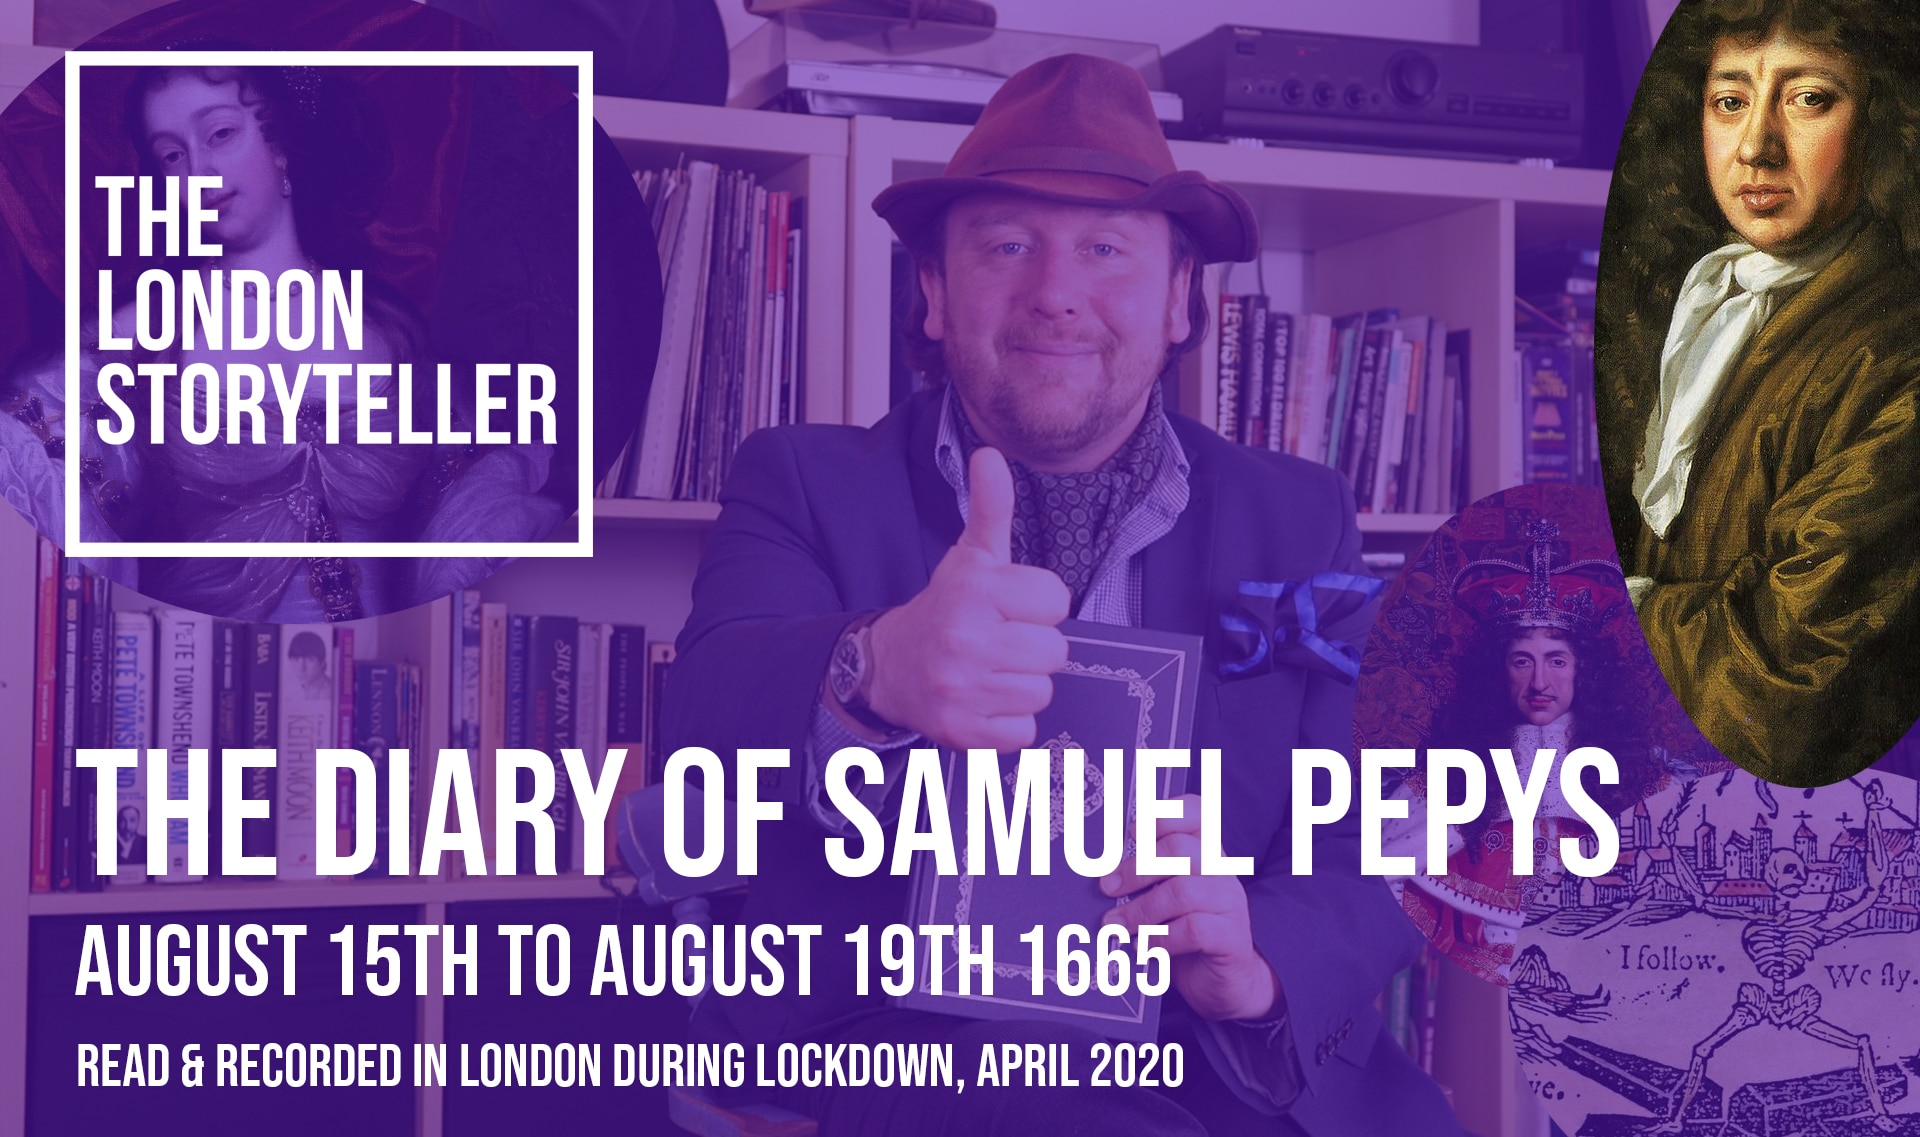 A custom thumbnail with Samuel Pepys and the London Storyteller for a video of Pepys Diary from August 1665